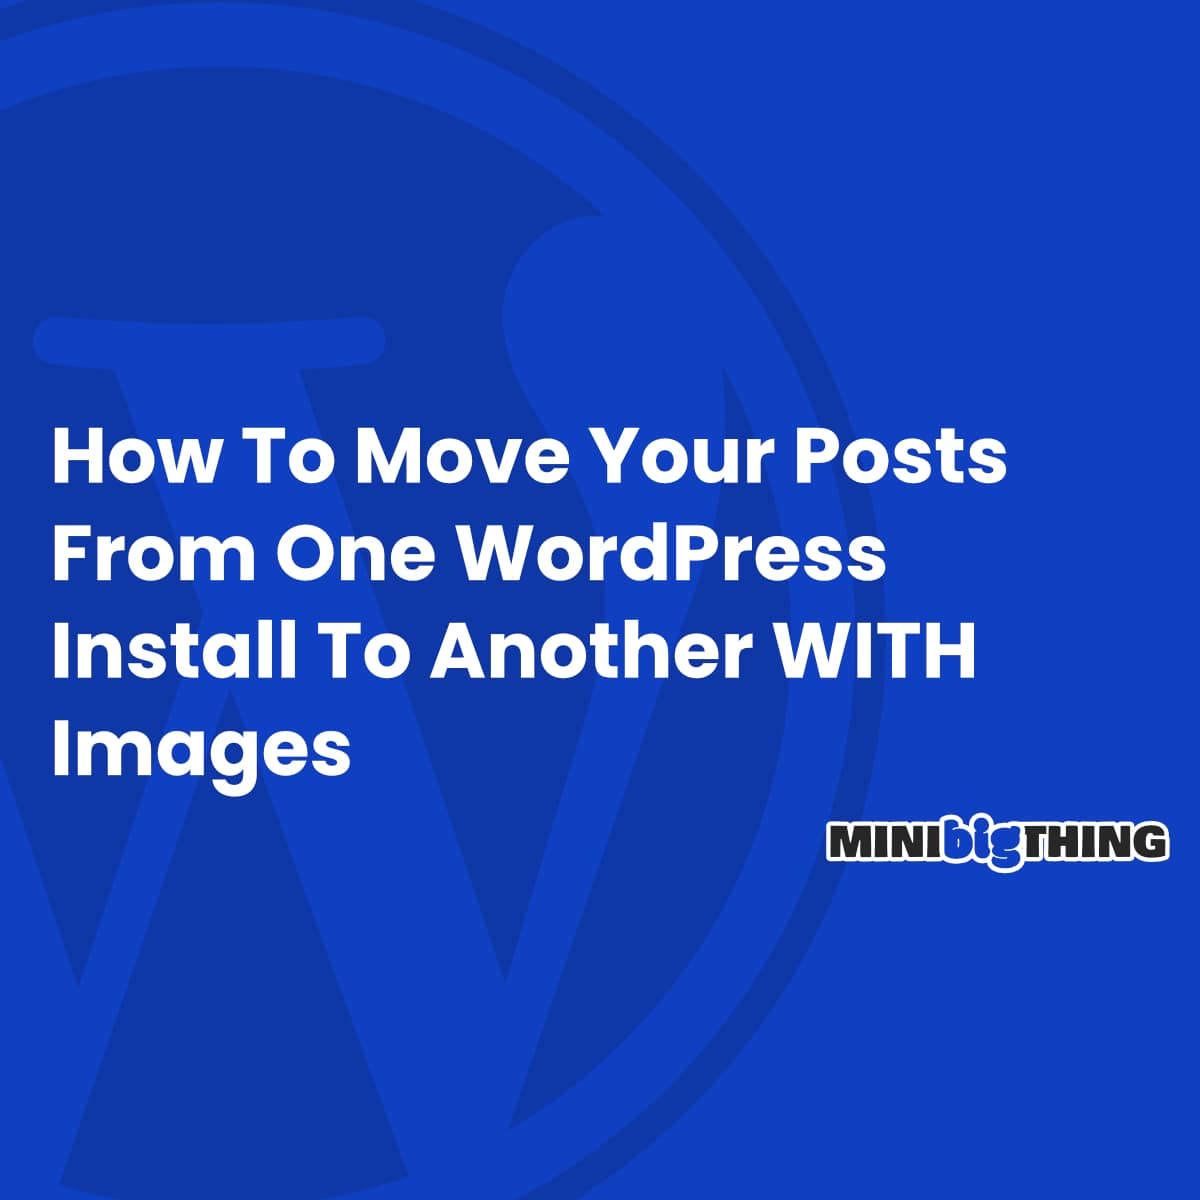 How To Move Your Posts From One Wordpress Install To Another With Images